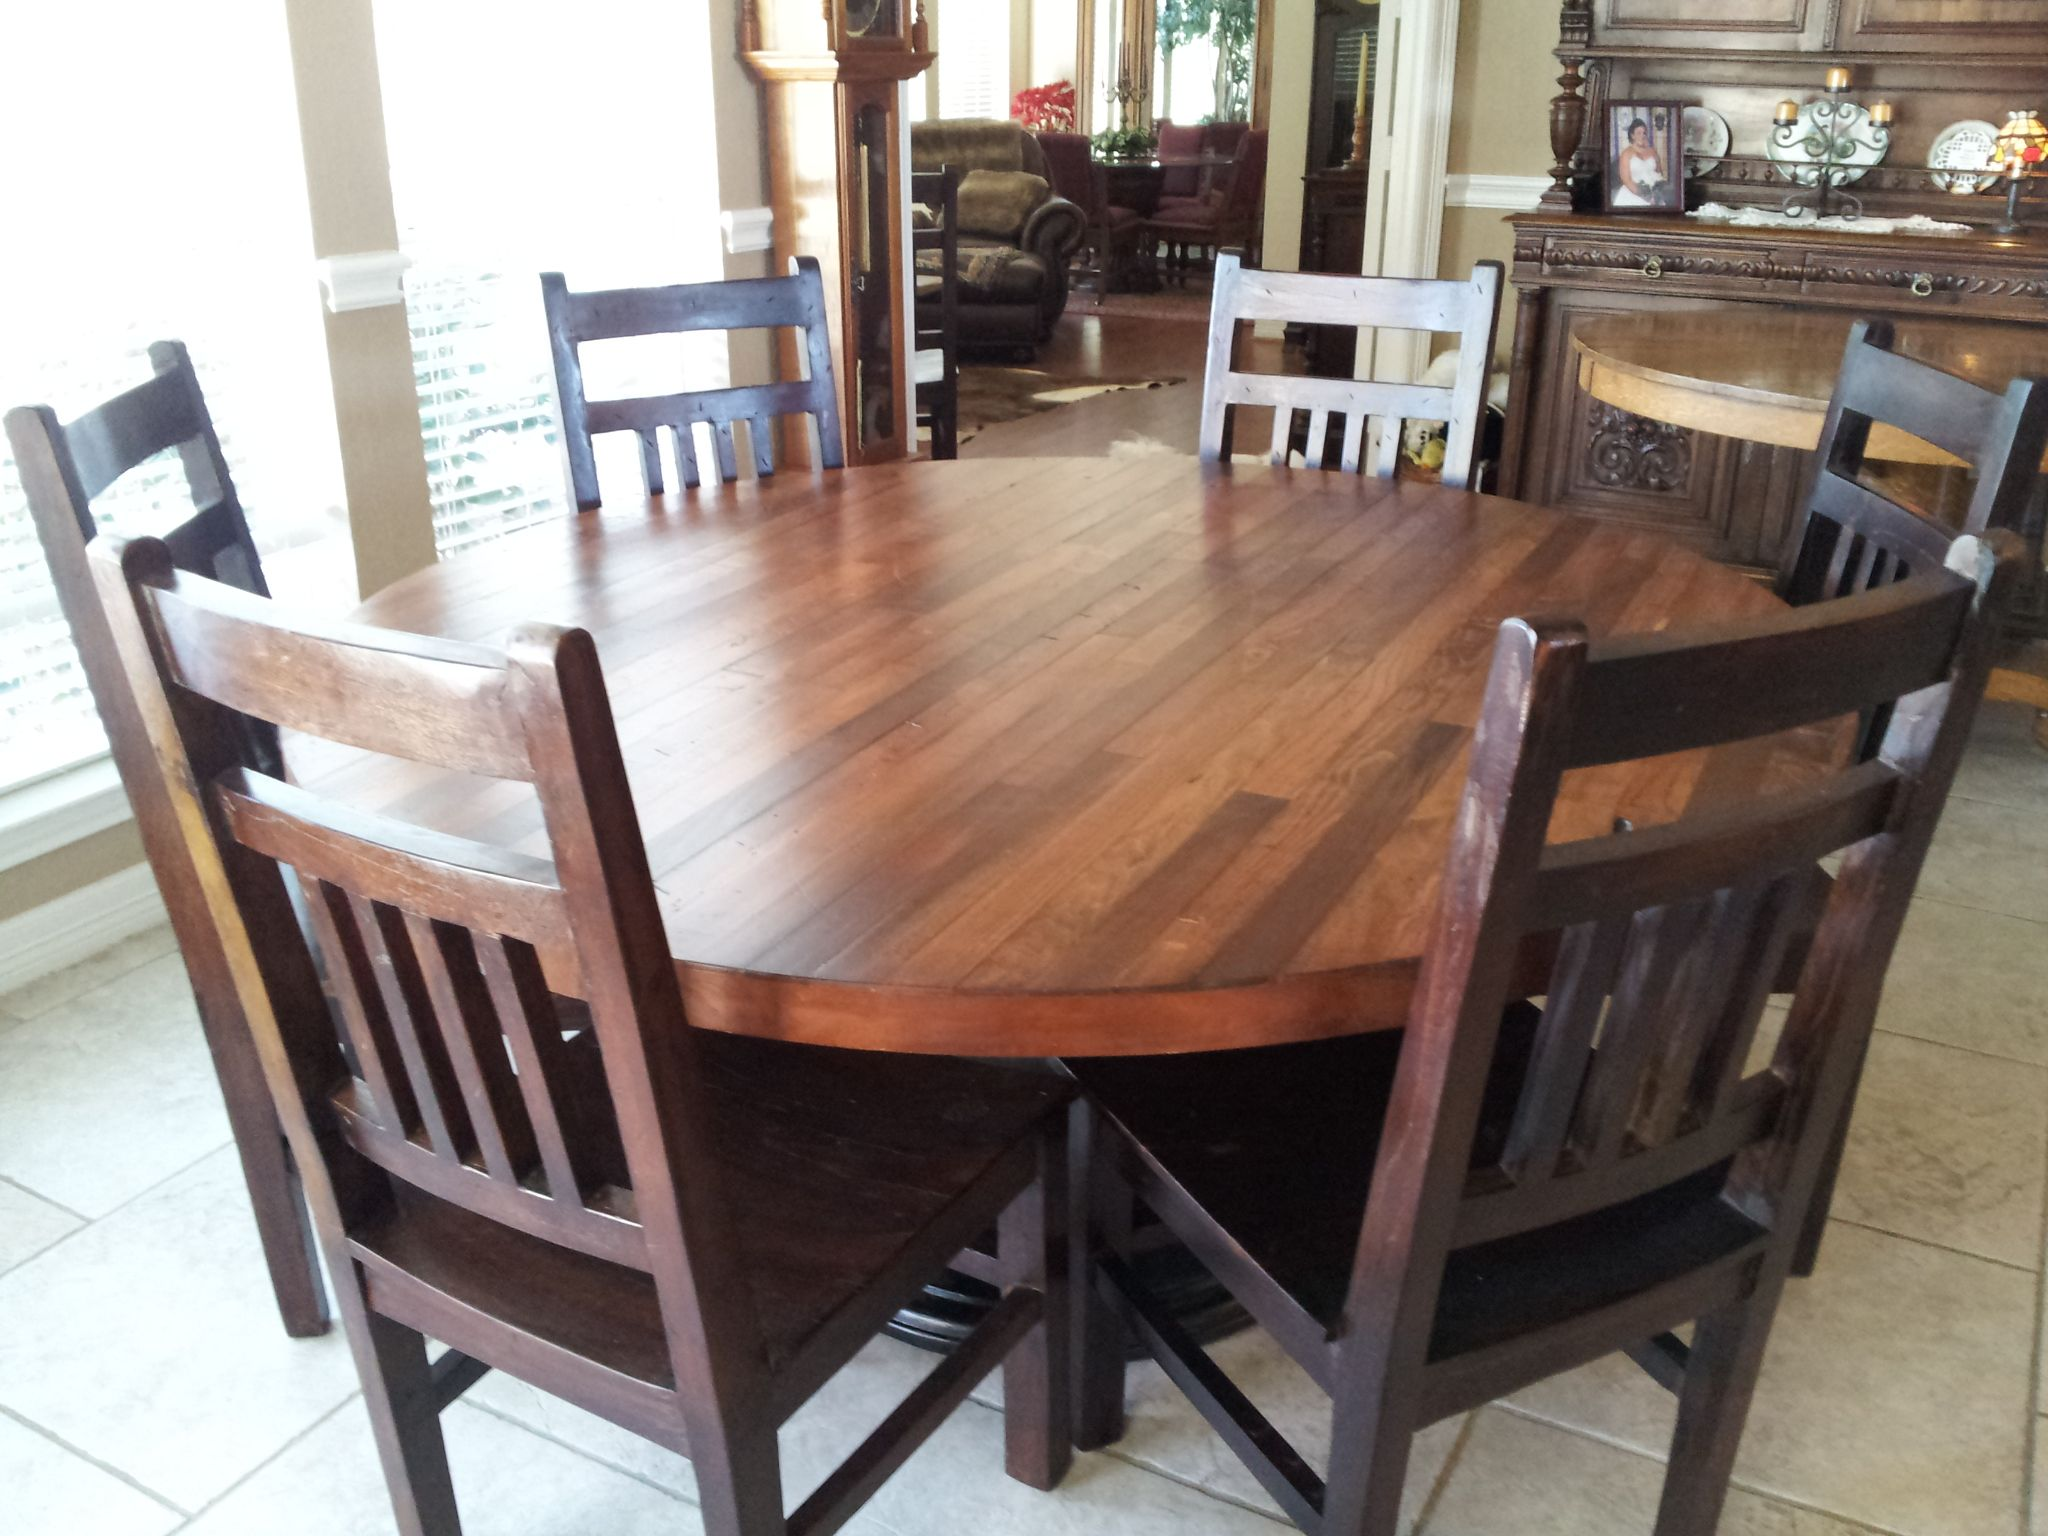 Walnut Dining Tables | CustomMade.com